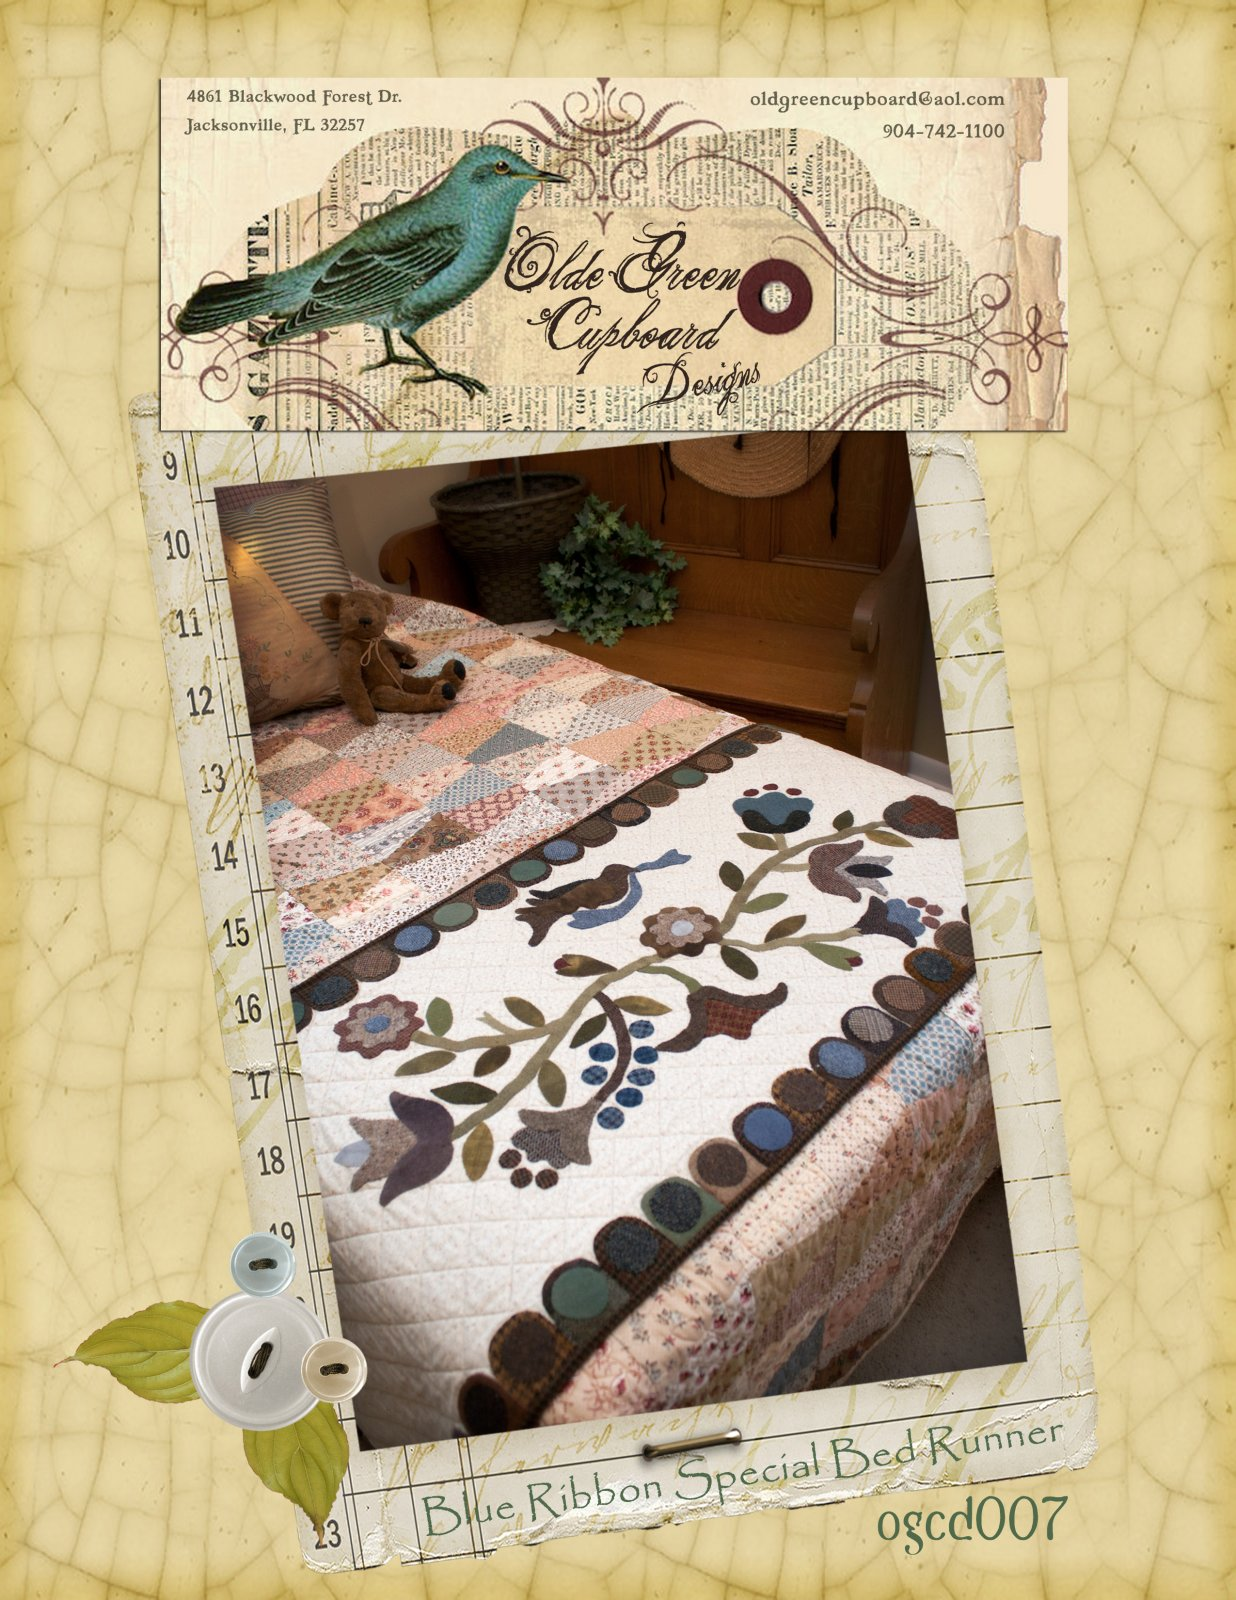 Blue Ribbon Special - Table / Bed Runner - OGCD007